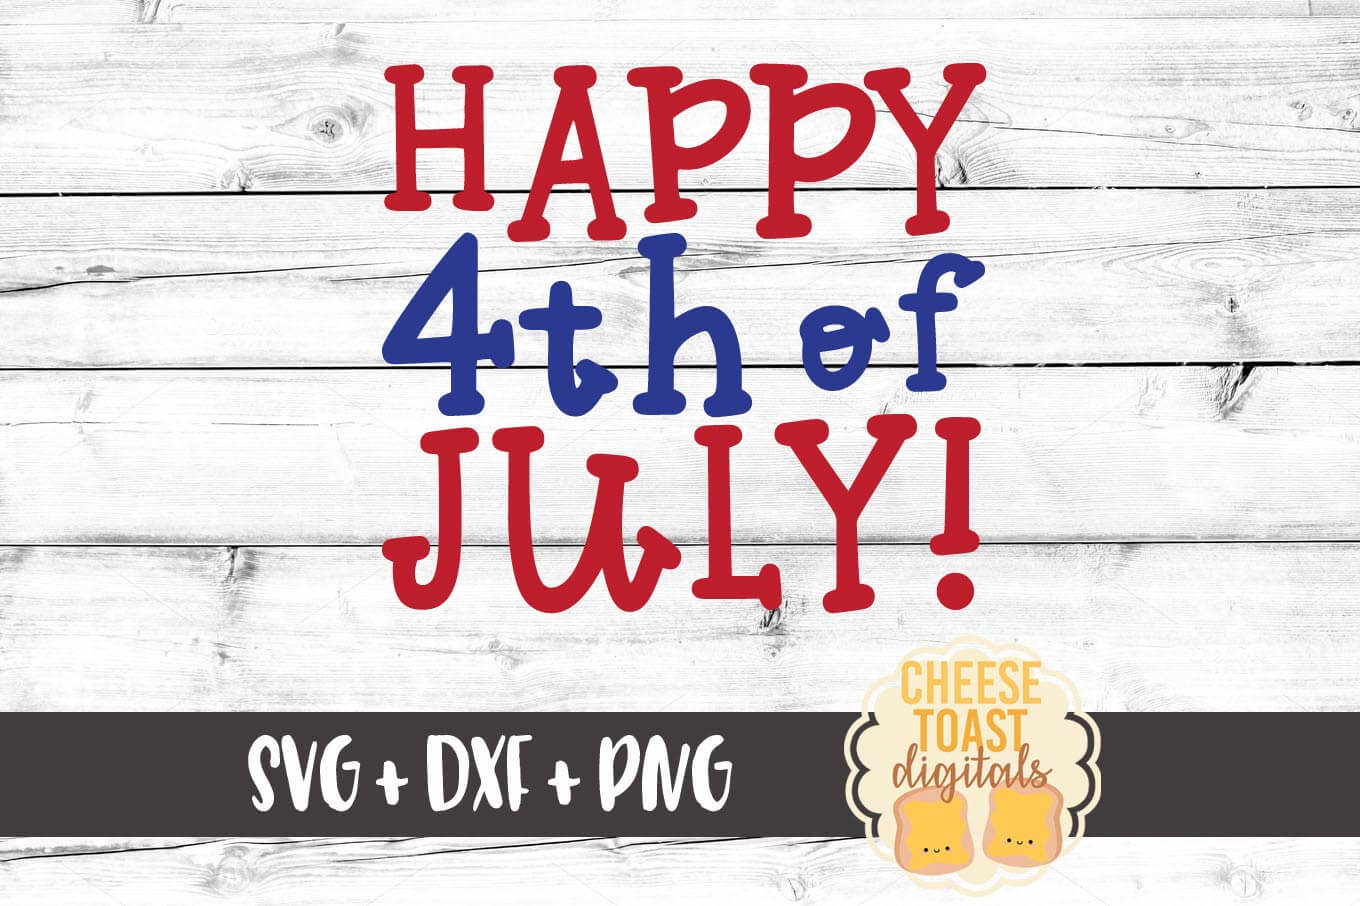 Happy Fourth of July - SVG, PNG, DXF